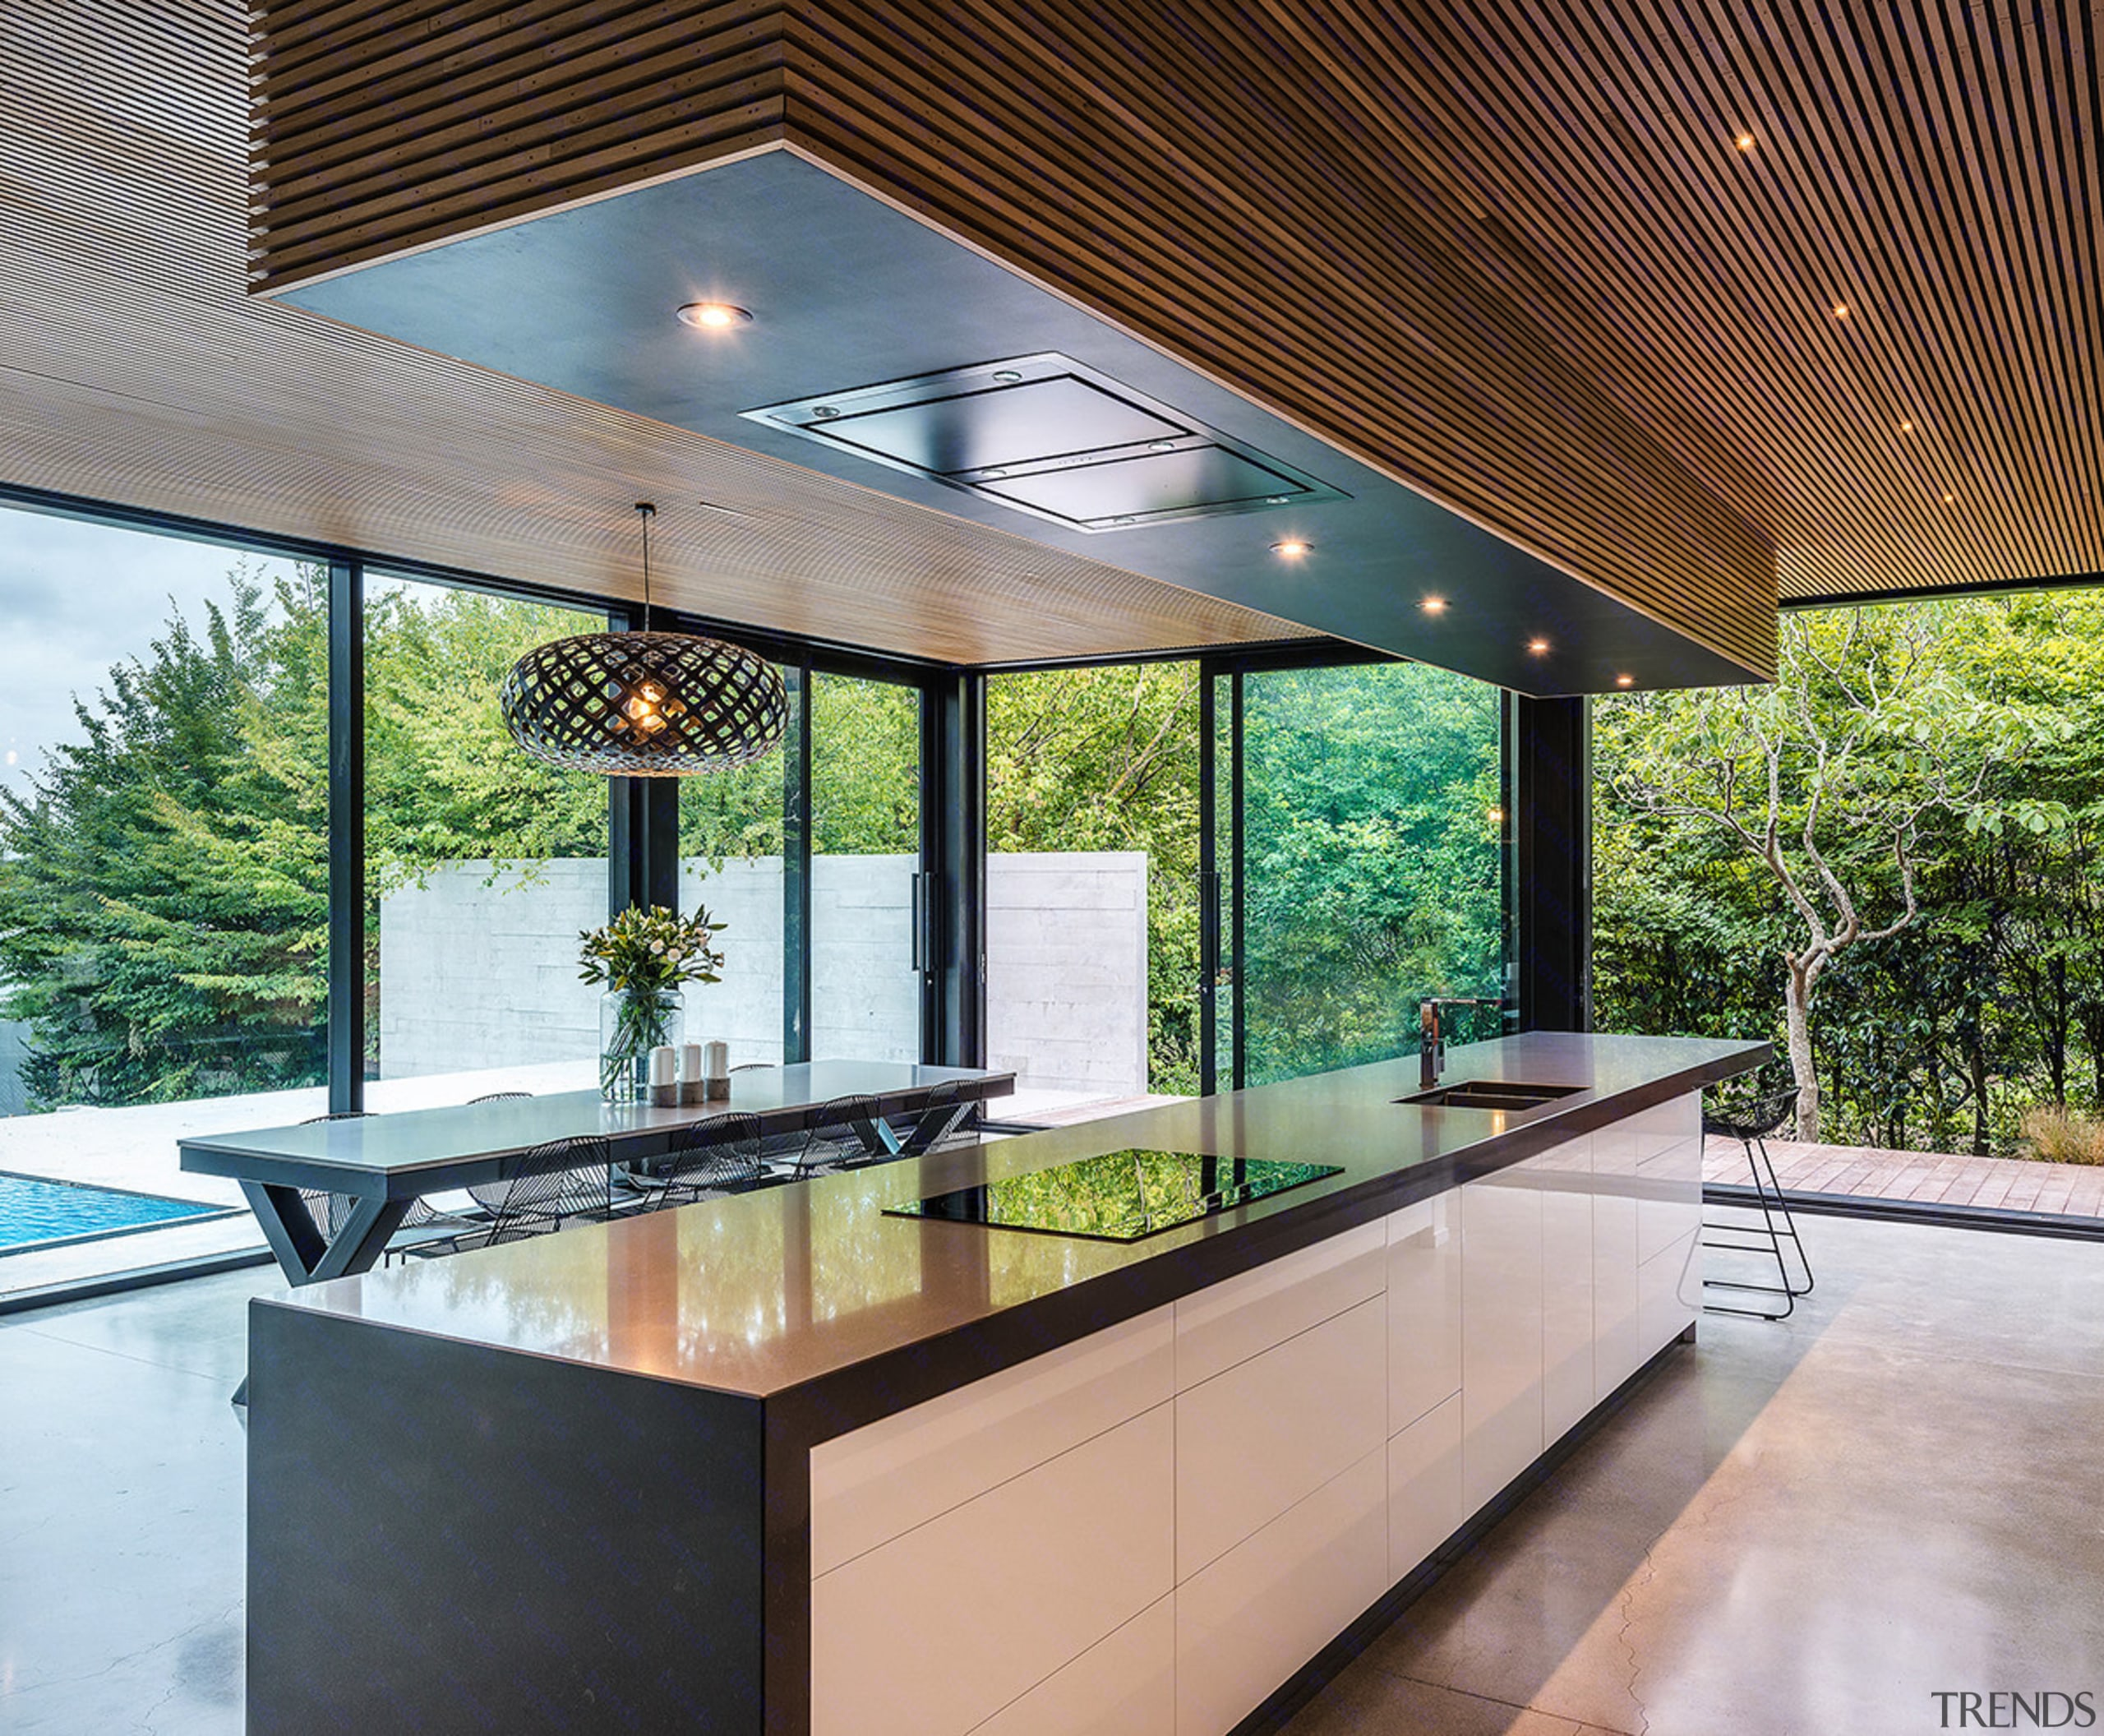 Trends Look Up A Feature Of This Living Room Is A Rimu Batten Ceiling With Black Negative